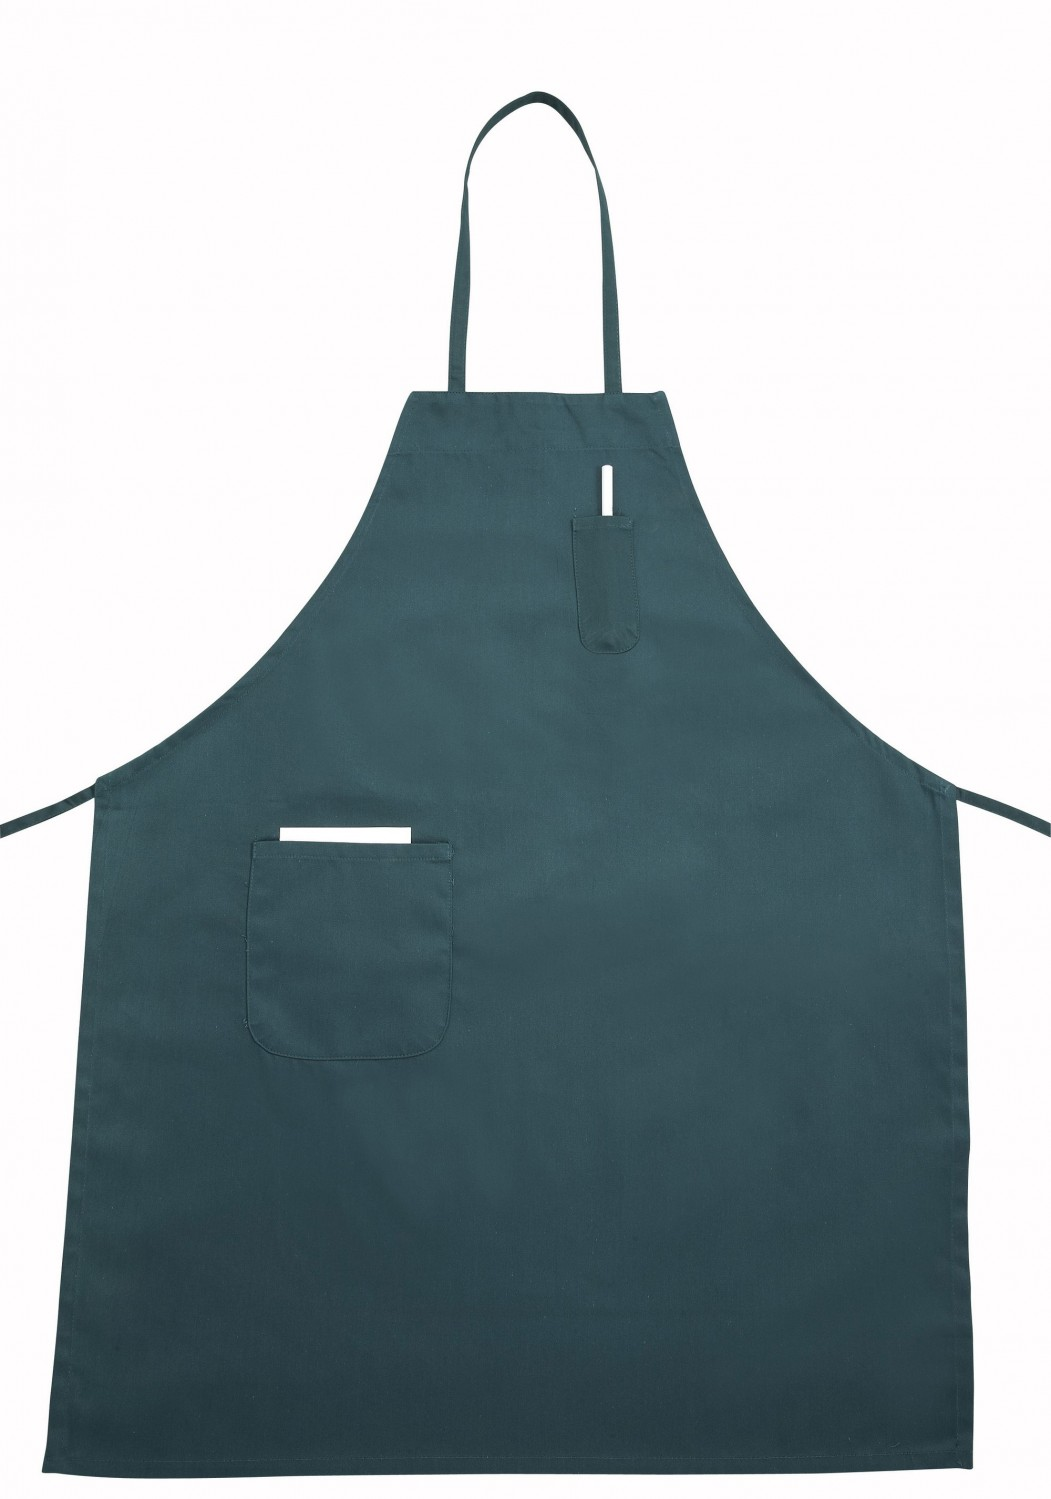 Winco BA-PGN Green Full-Length Bib Apron with Pocket